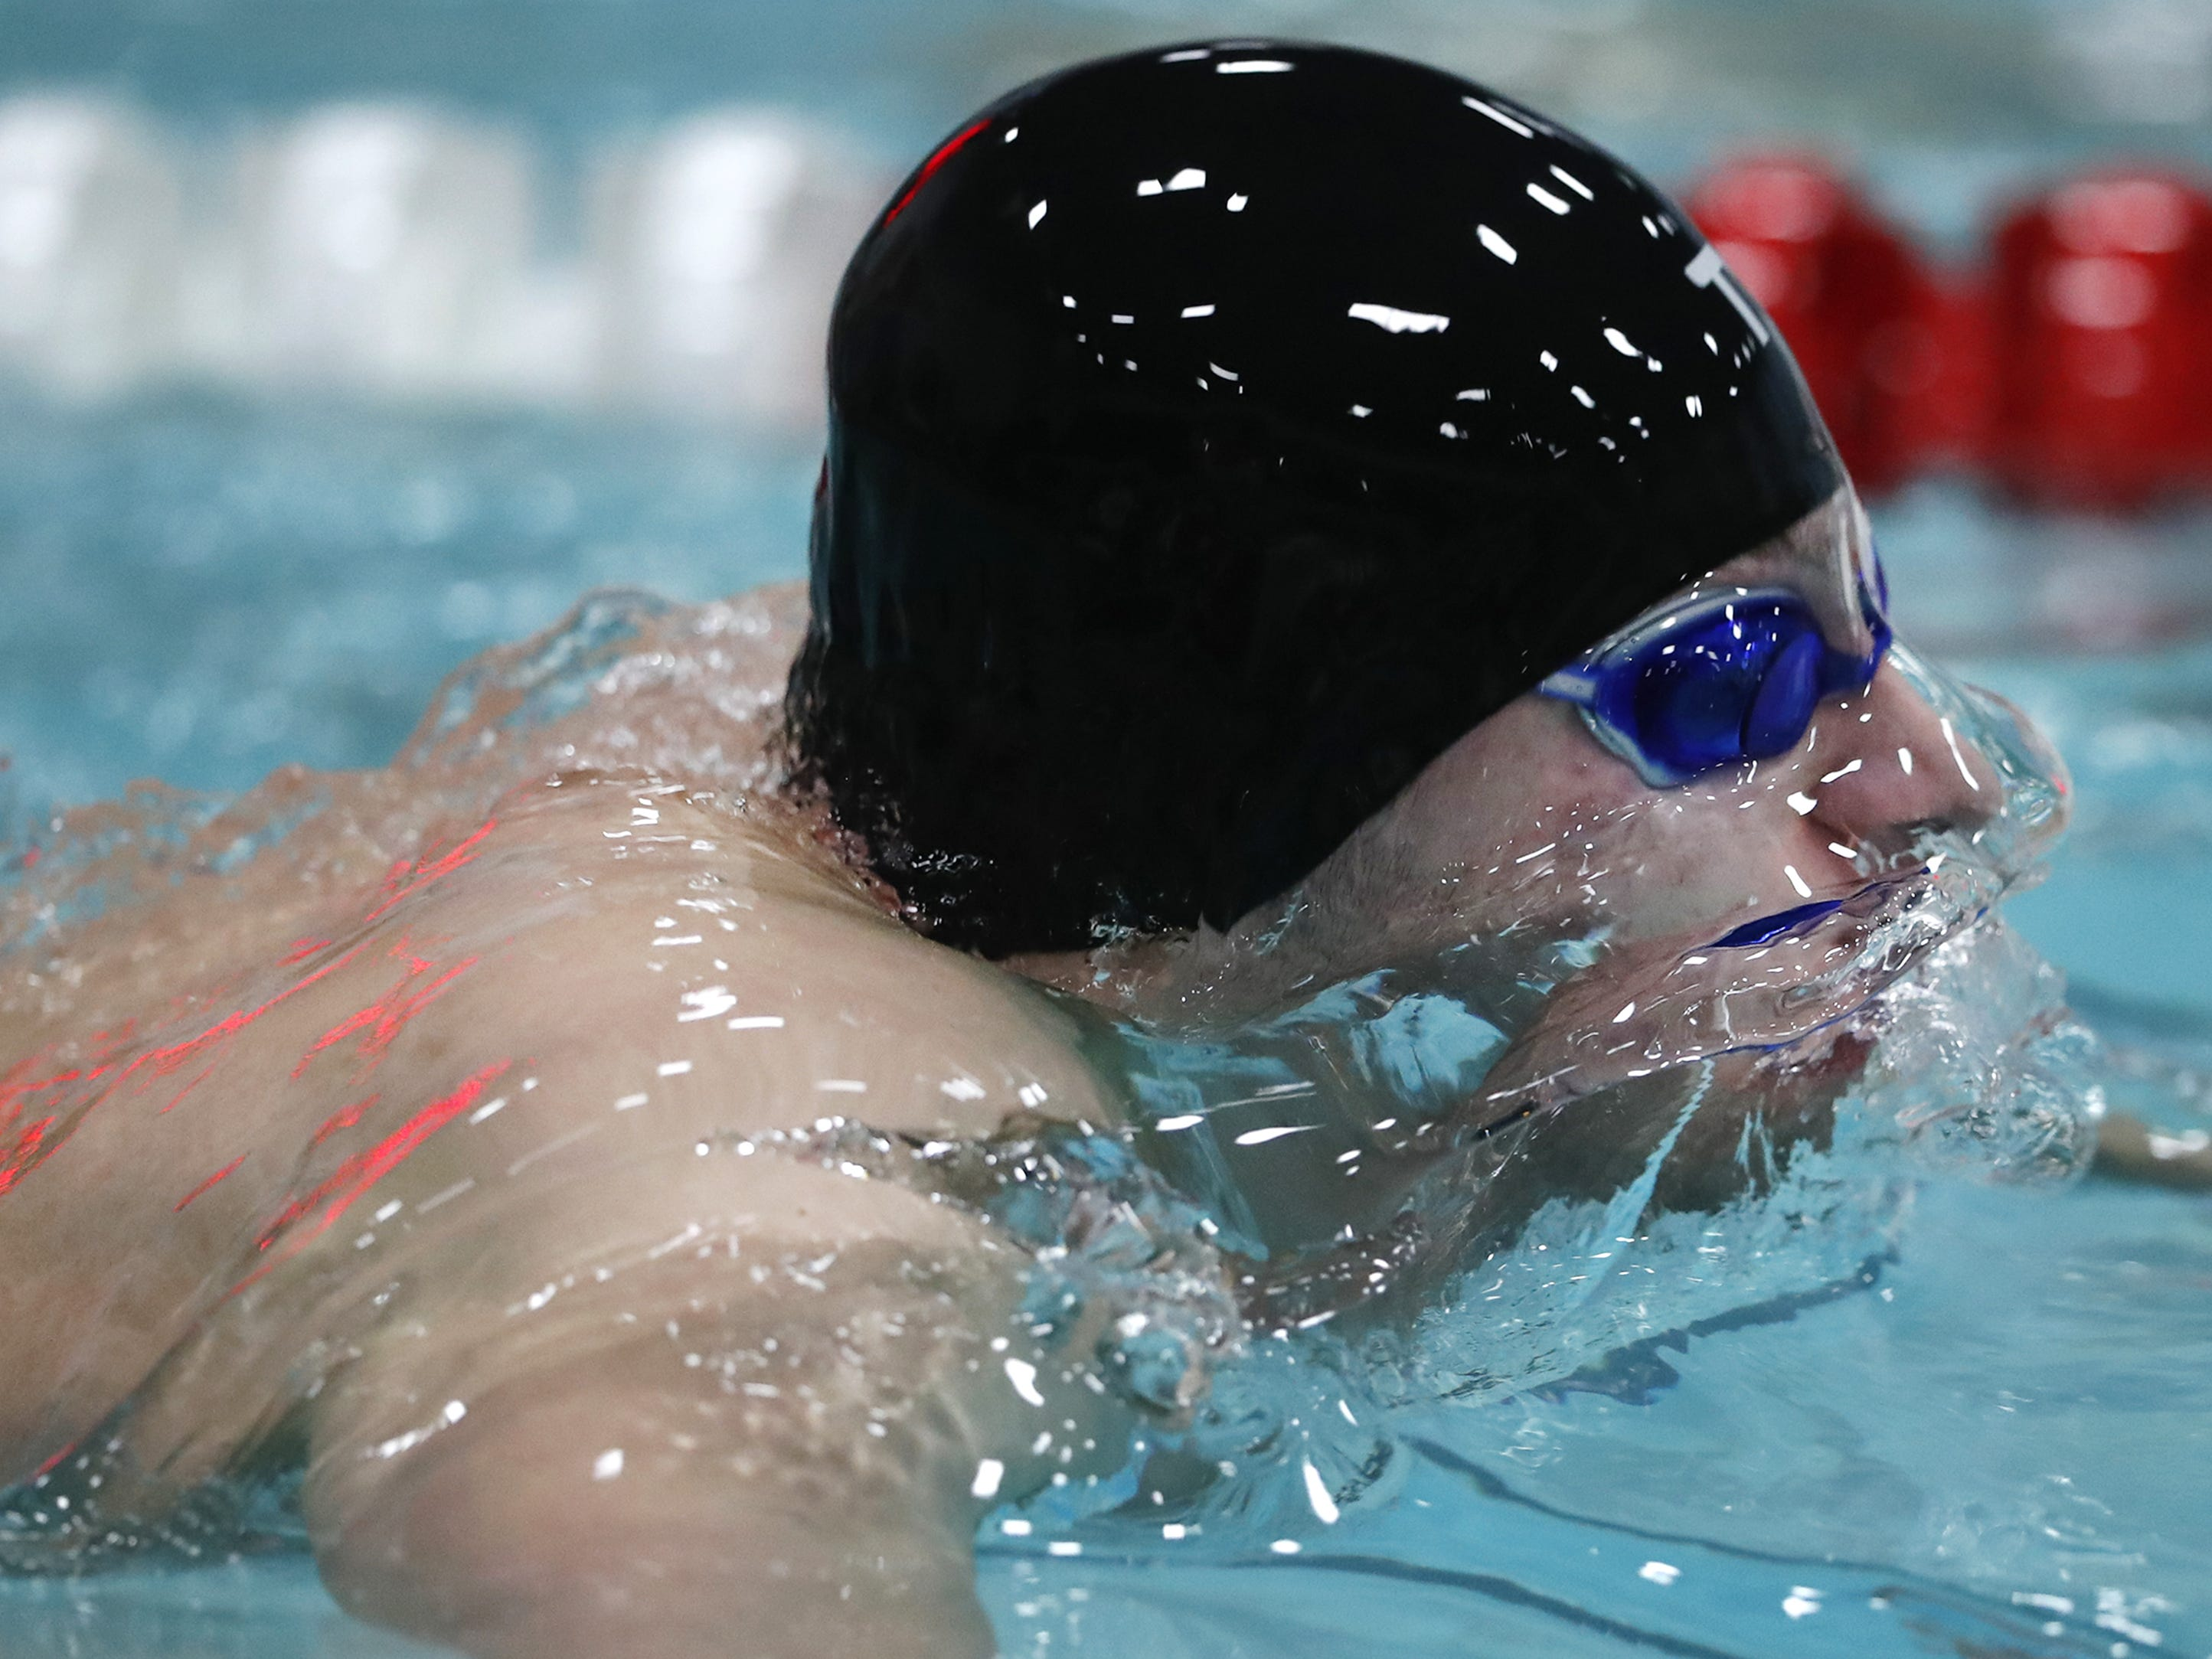 Sheboygan NorthÕs Andrew Leal breaks through the surface of the water while racing in the 100 yard butterfly during the Division 1 2019 State Boys Swimming and Diving Championships Saturday, Feb. 16, 2019, at the UW Natatorium in Madison, Wis. Danny Damiani/USA TODAY NETWORK-Wisconsin